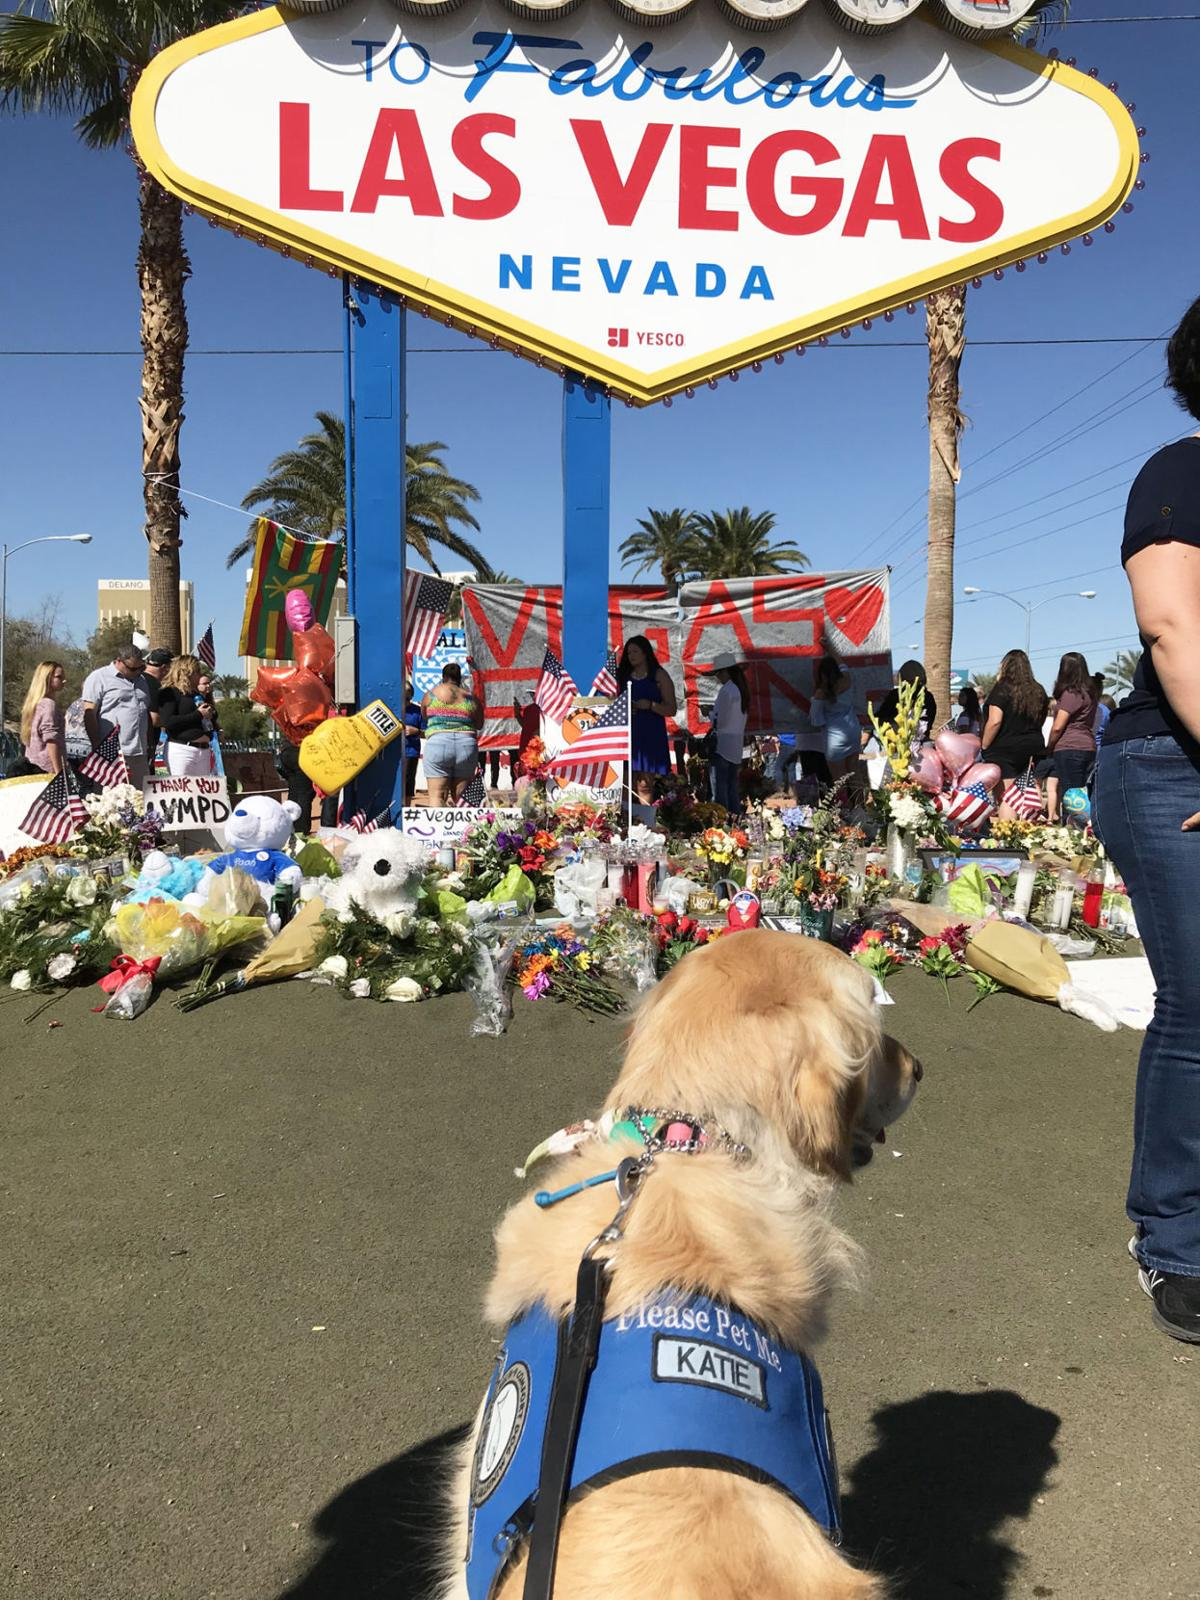 Katie the Comfort Dog by Las Vegas sign